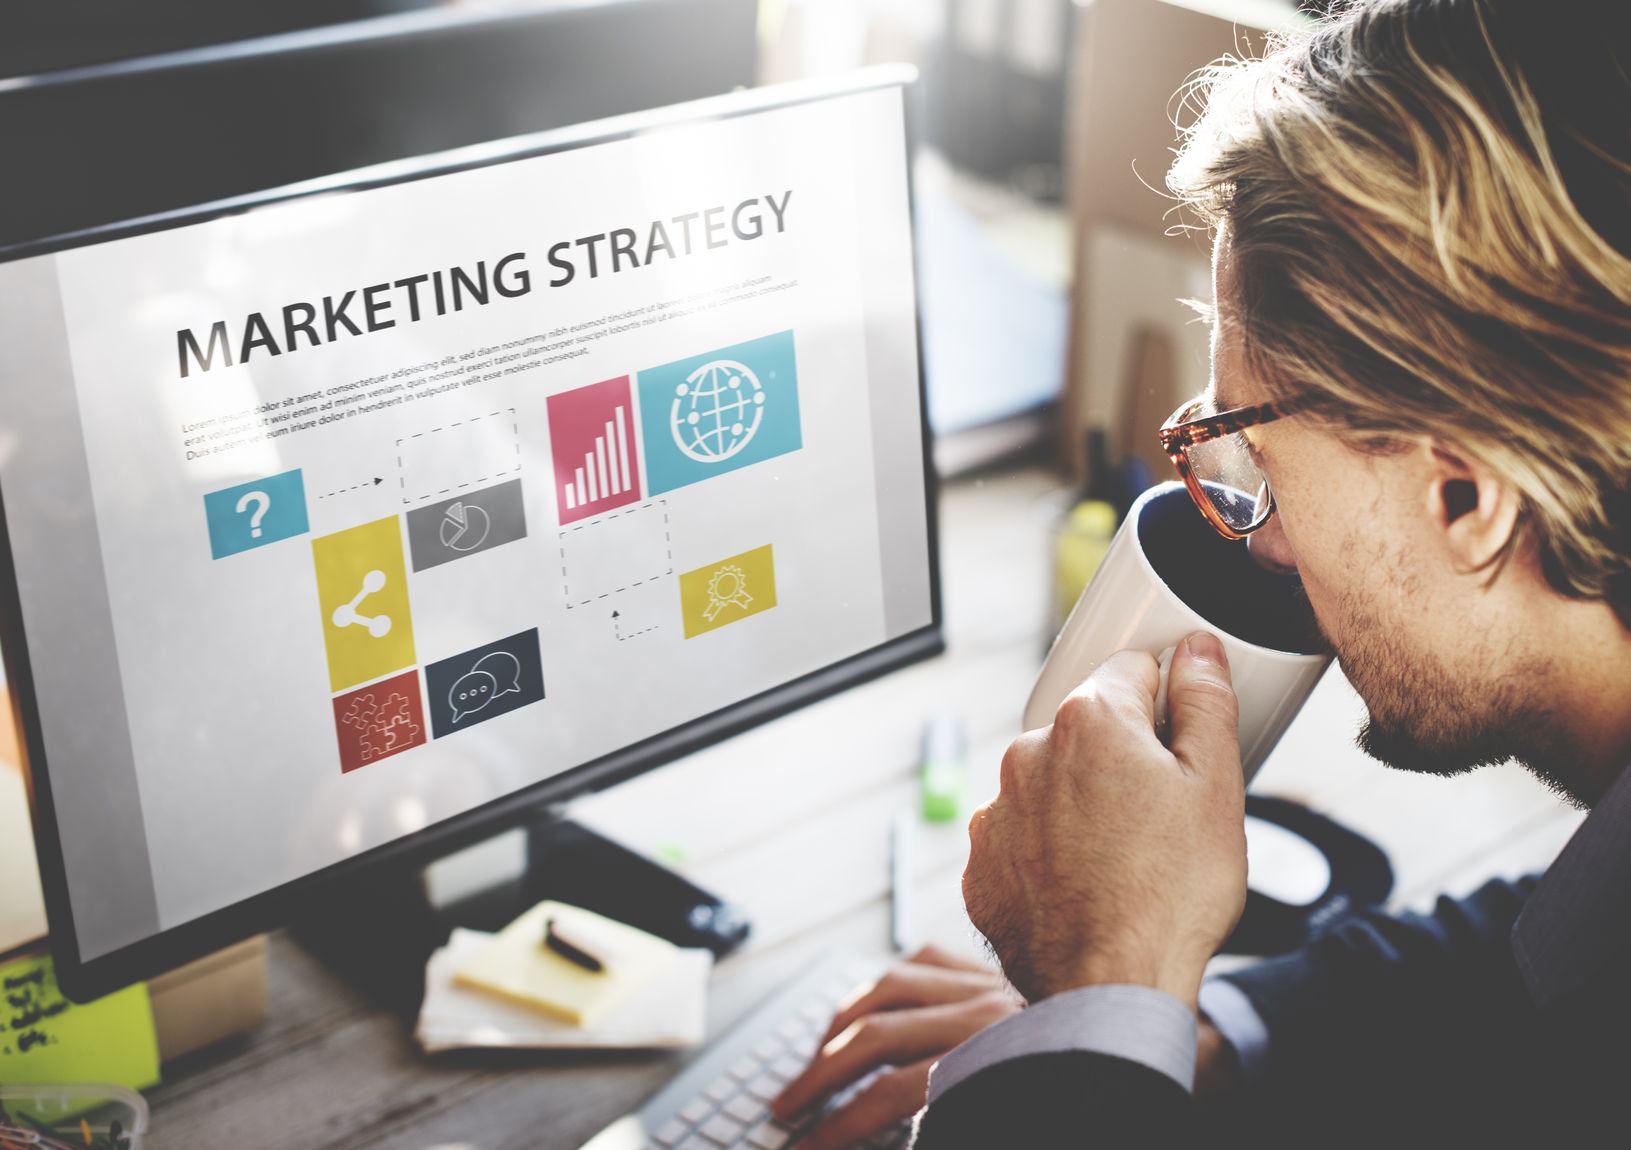 6 Aspects of Marketing Your Continuing Education Program